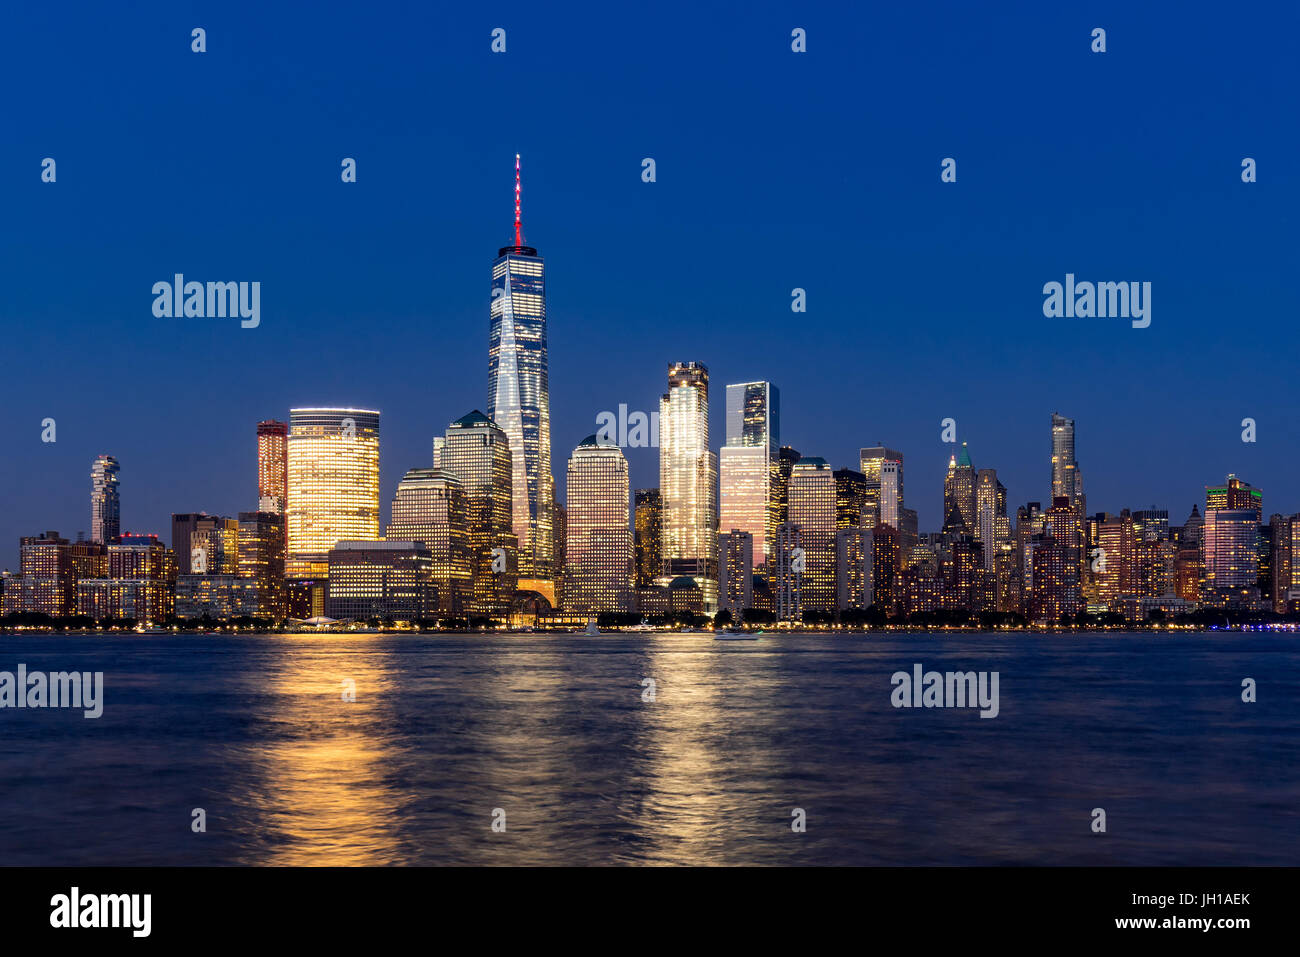 New York City Financial District skyscrapers and Hudson River at dusk. Panoramic view of Lower Manhattan - Stock Image